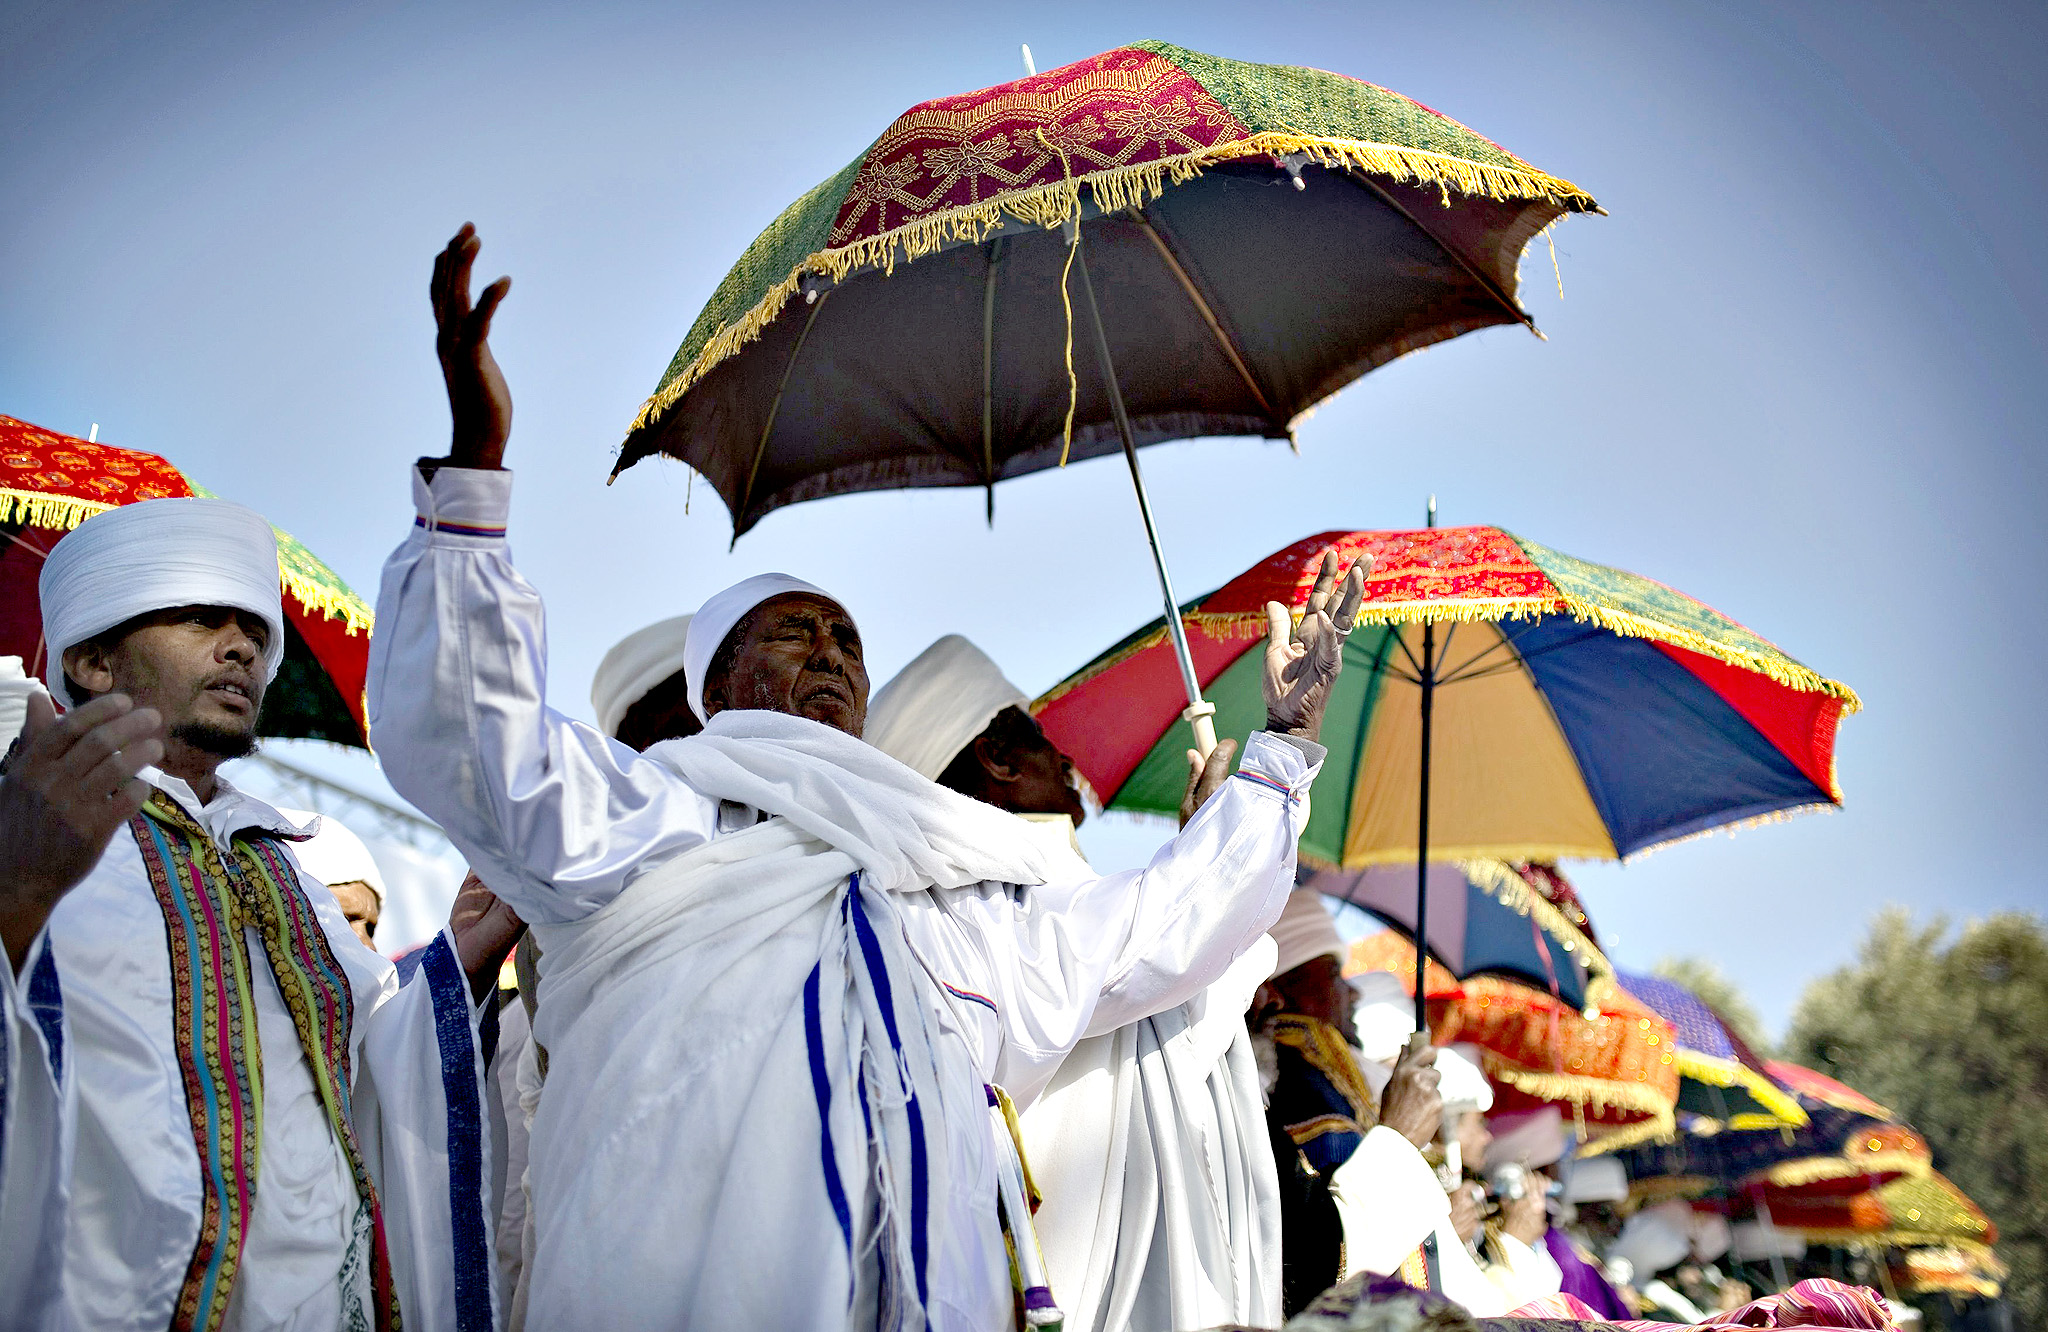 Members of the Ethiopian Jewish community in Israel pray during a ceremony marking the holiday of Sigd in Jerusalem November 20, 2014. Sigd marks the community's longing to return to Jerusalem, where they see their biblical roots.